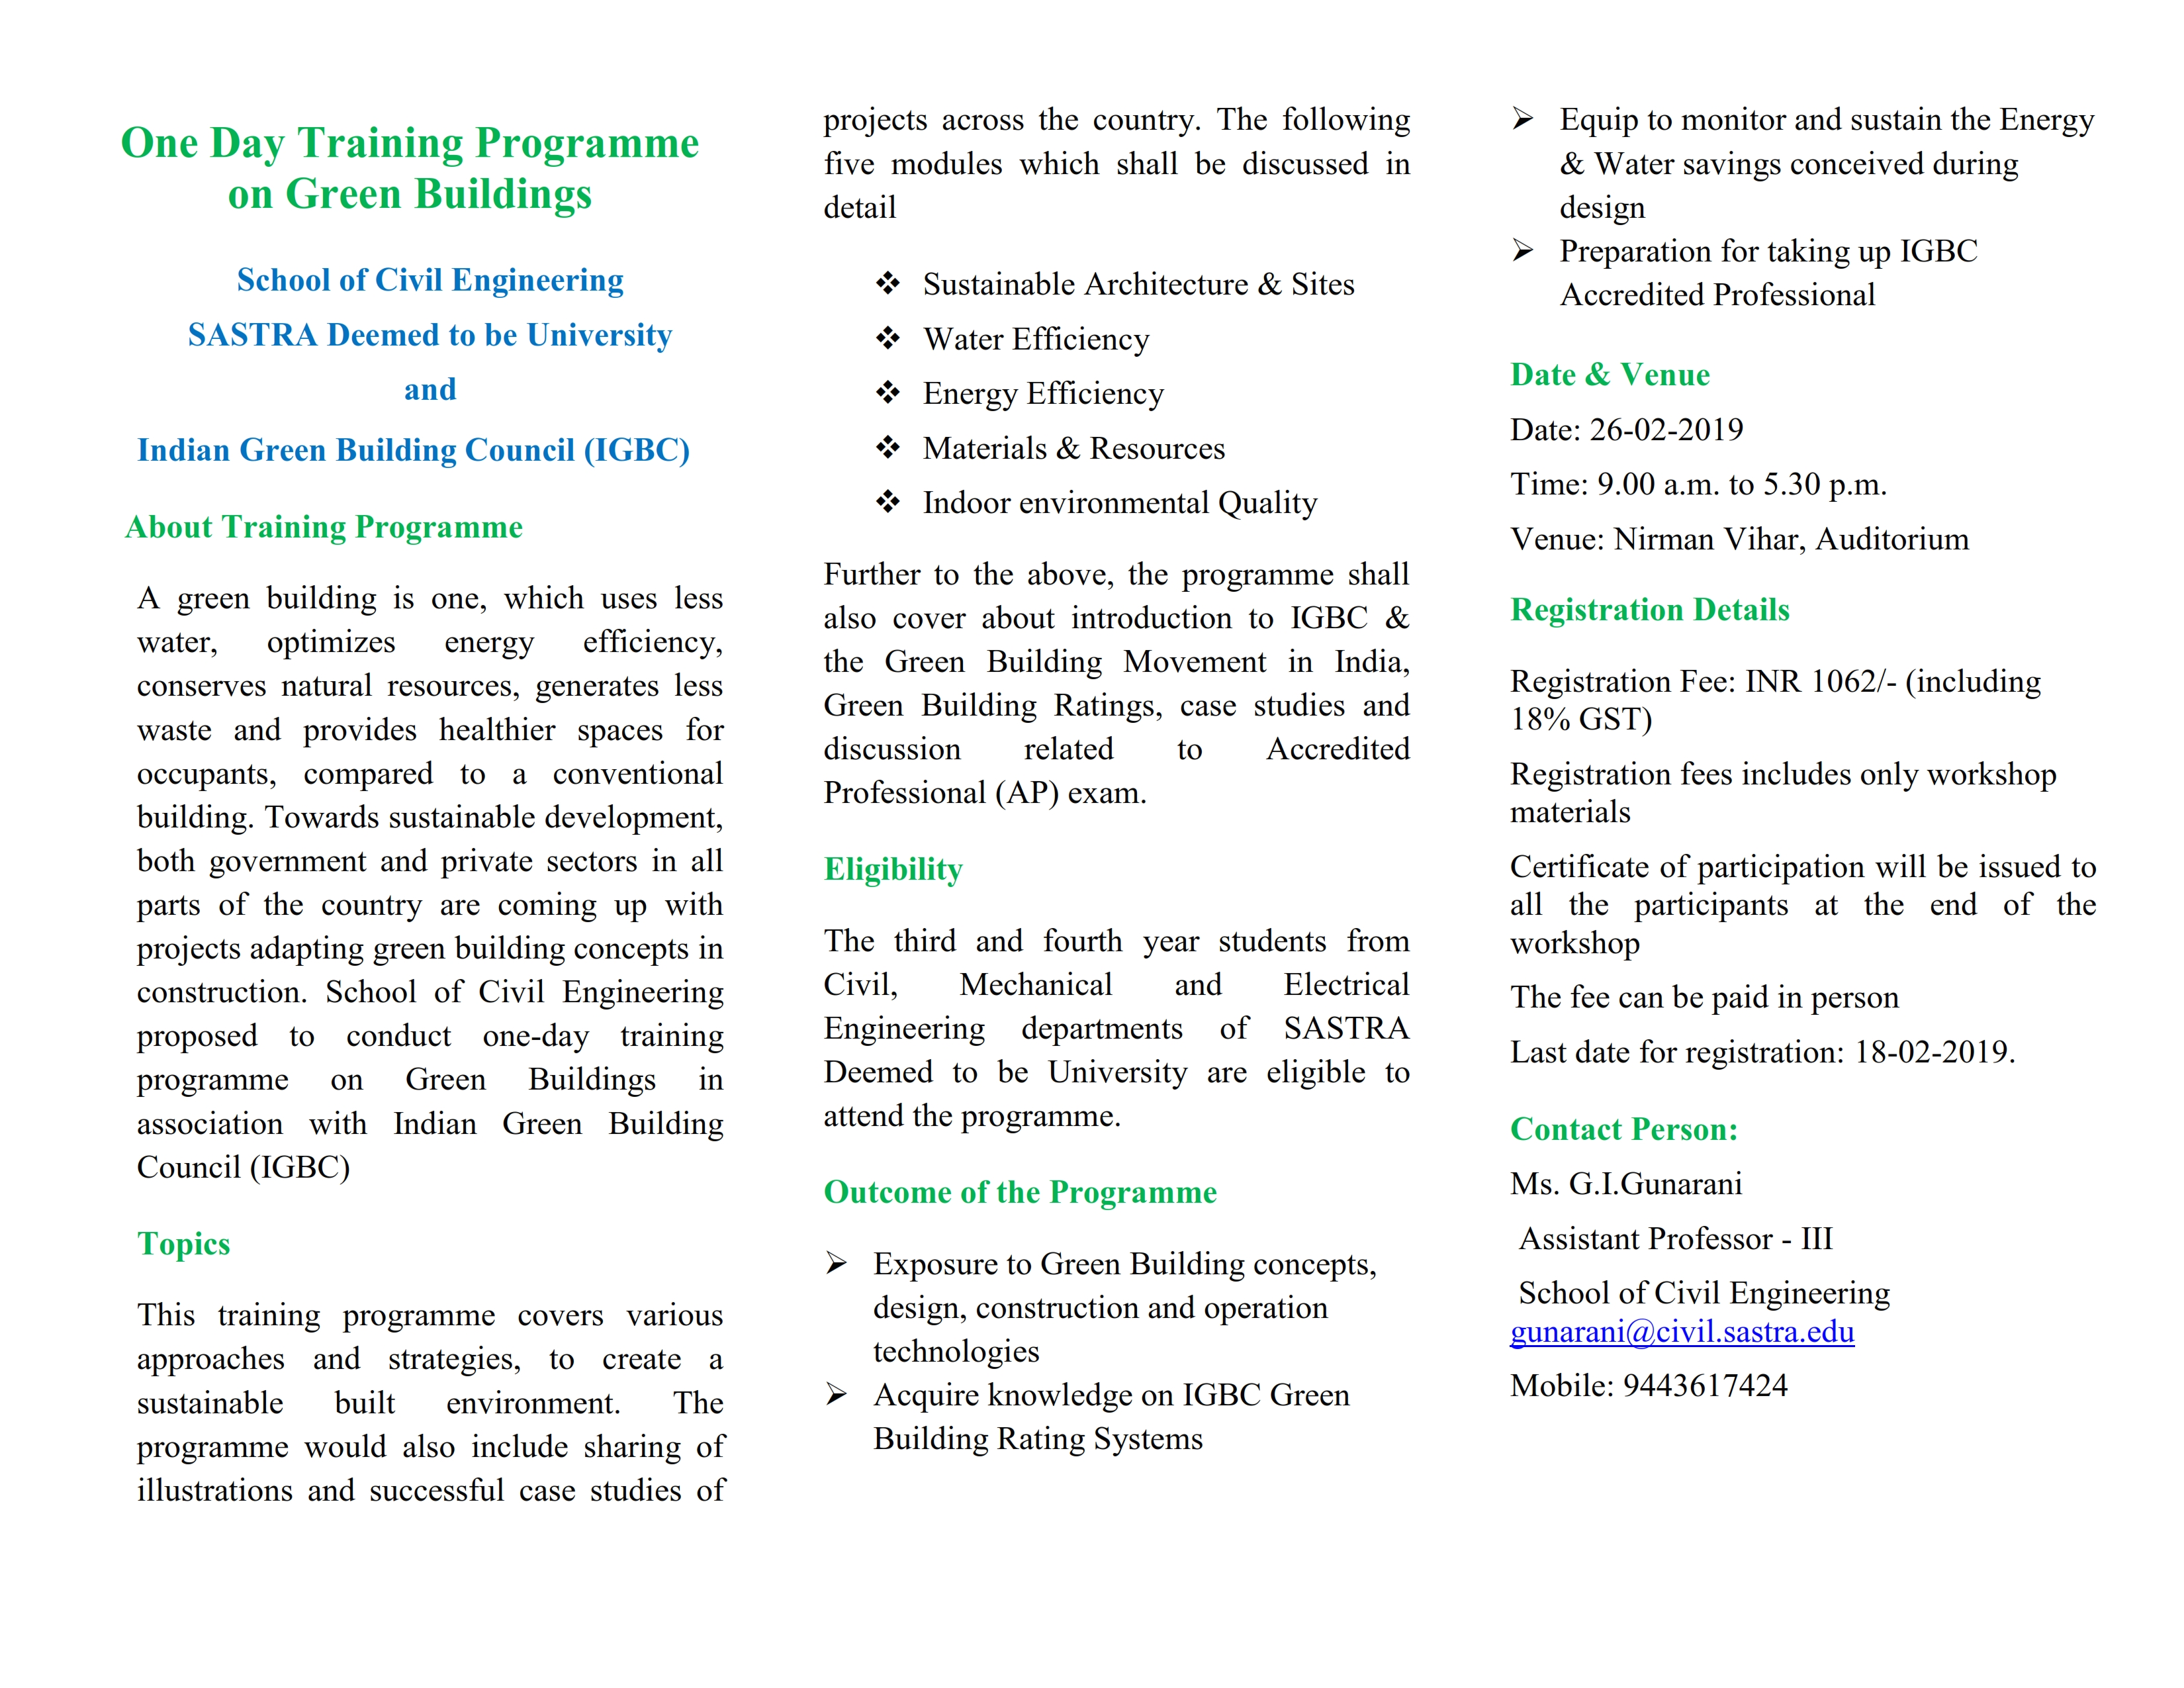 Training Programme on Green Building